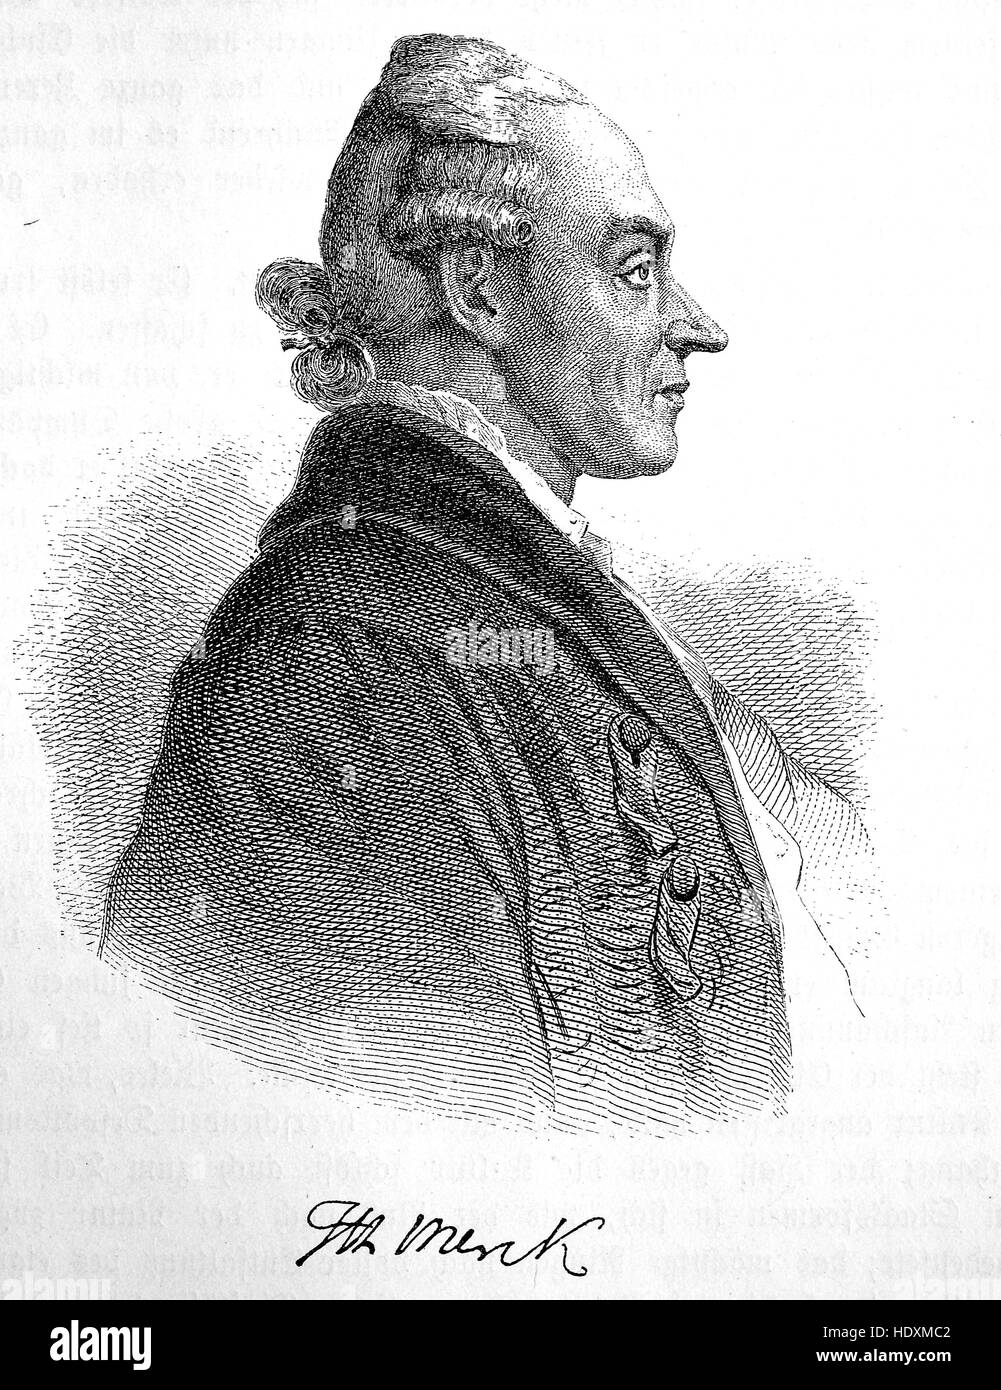 Johann Heinrich Merck, 1741-1791, German author and critic and a chemist, woodcut from the year 1882, digital improved - Stock Image